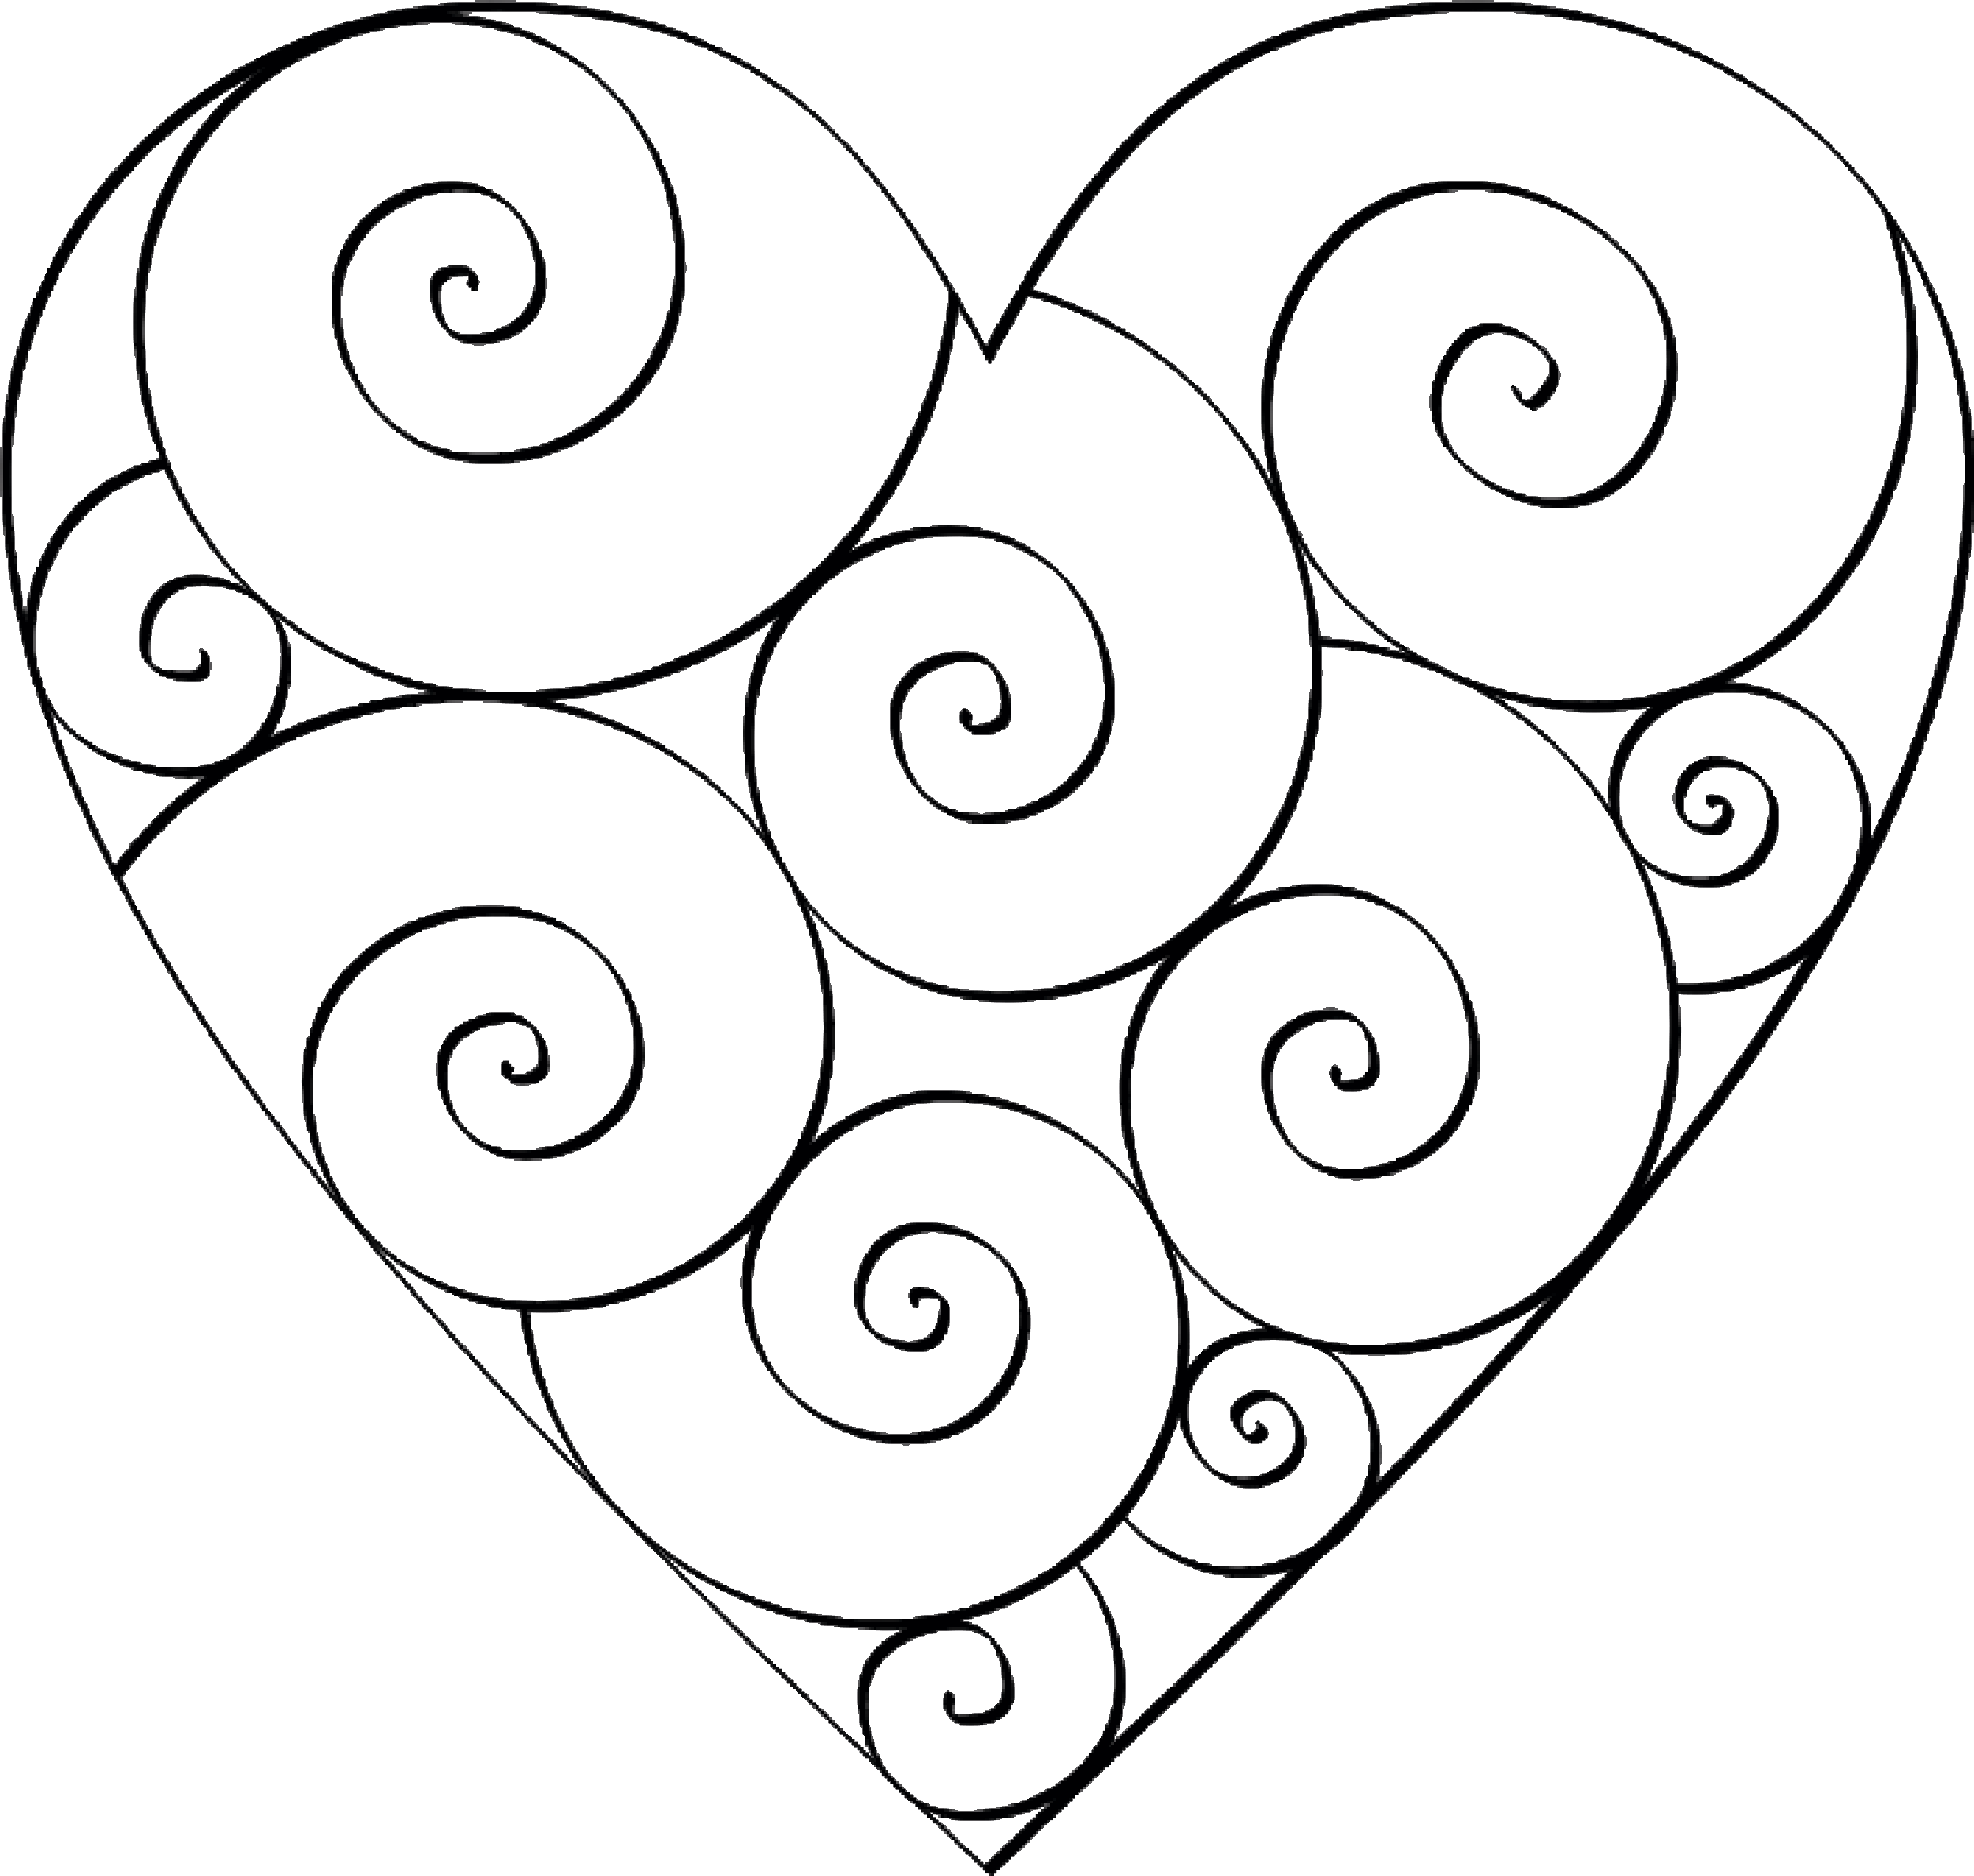 heart coloring book heart coloring pages coloringrocks coloring heart book